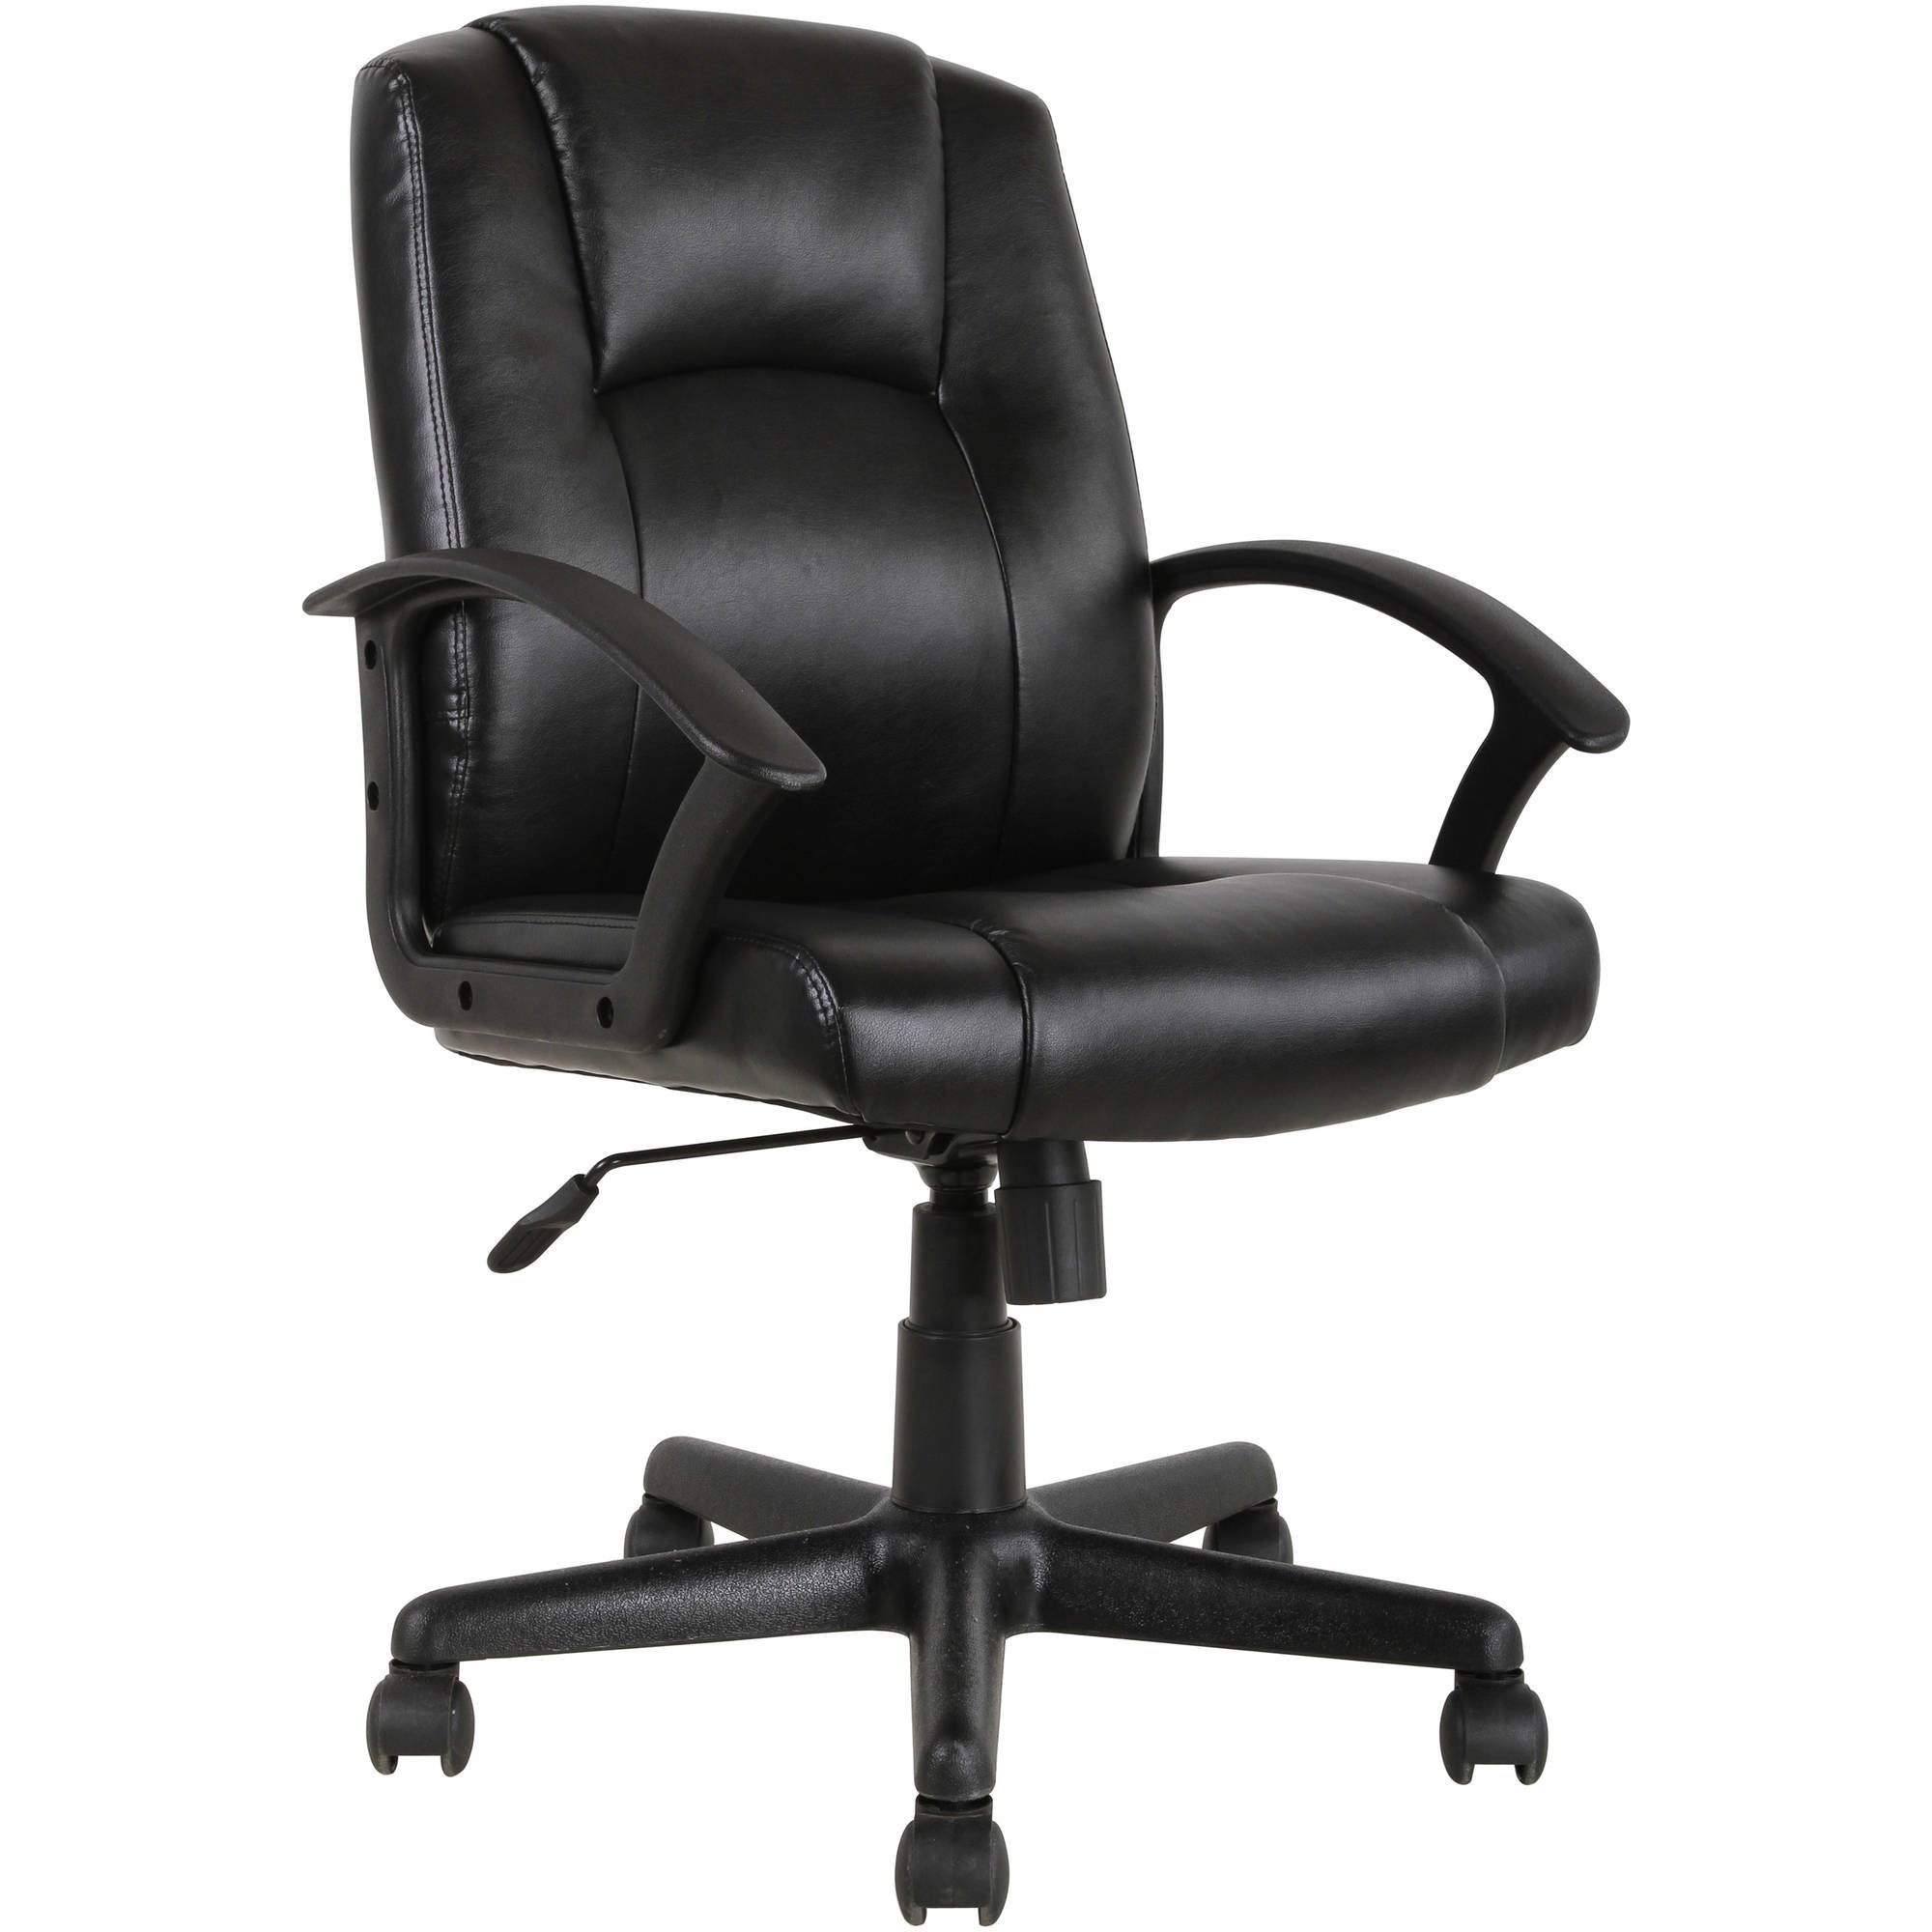 Mainstays Mid Back Leather Office Chair, Black